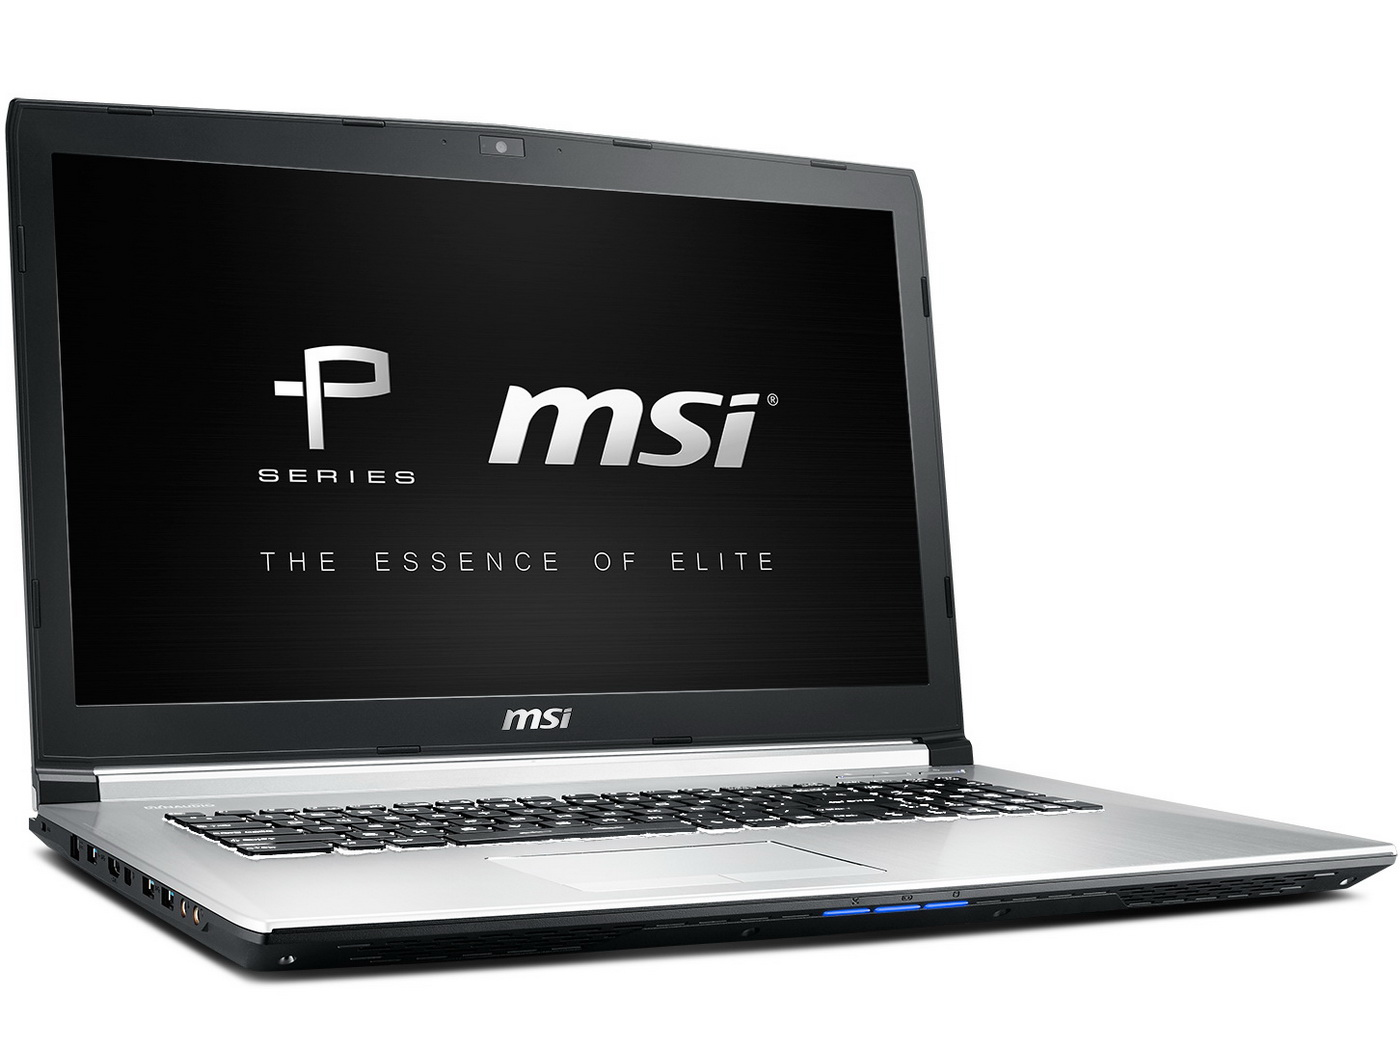 MSI PE70 6QD INTEL BLUETOOTH WINDOWS 8.1 DRIVER DOWNLOAD